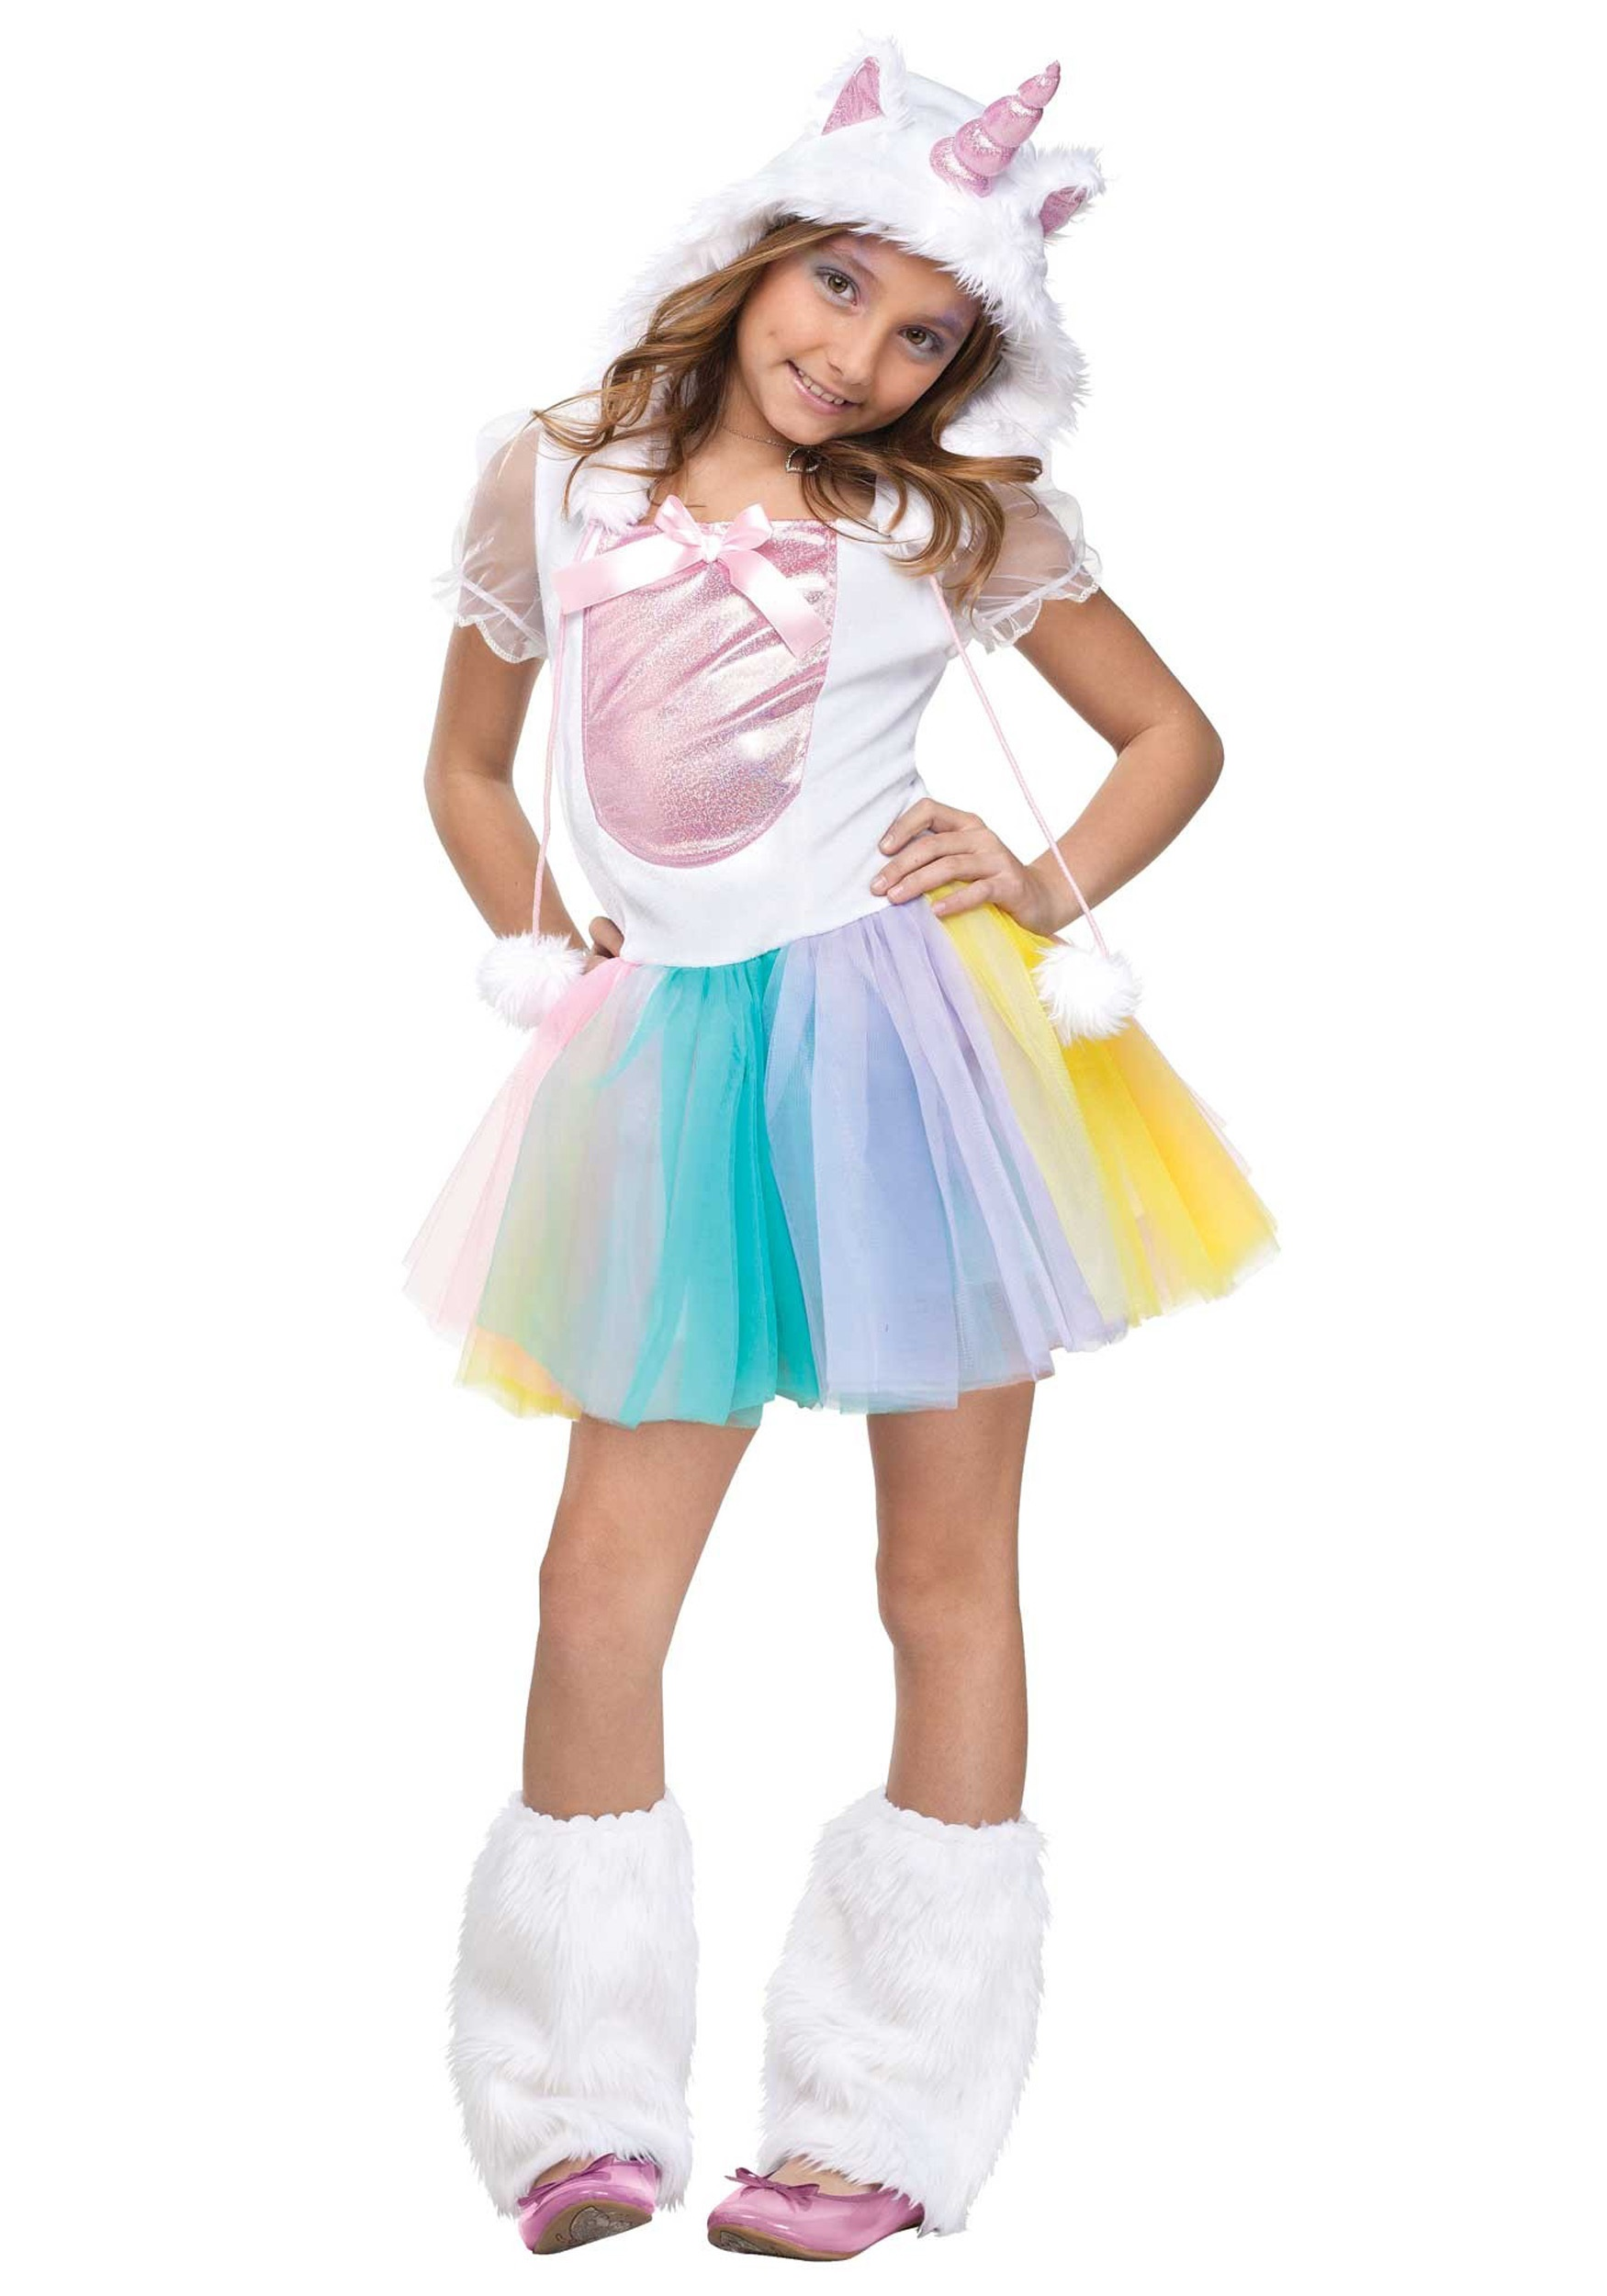 In addition to our selection of adult, toddler and girls unicorn costumes, you can also choose from accessories like horns, hats, headbands and socks and more to create your own unique look. No matter which unicorn costume you choose, you're sure to bring some sparkle to your next costume party.